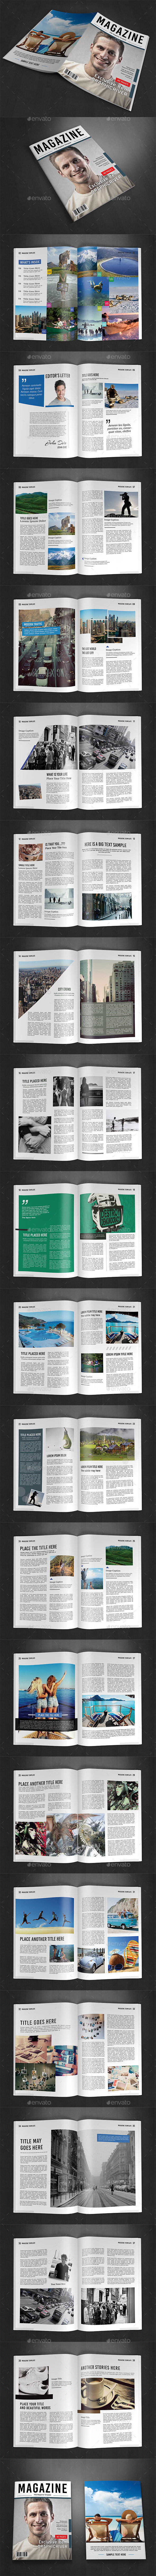 A4 Magazine Template Vol.10